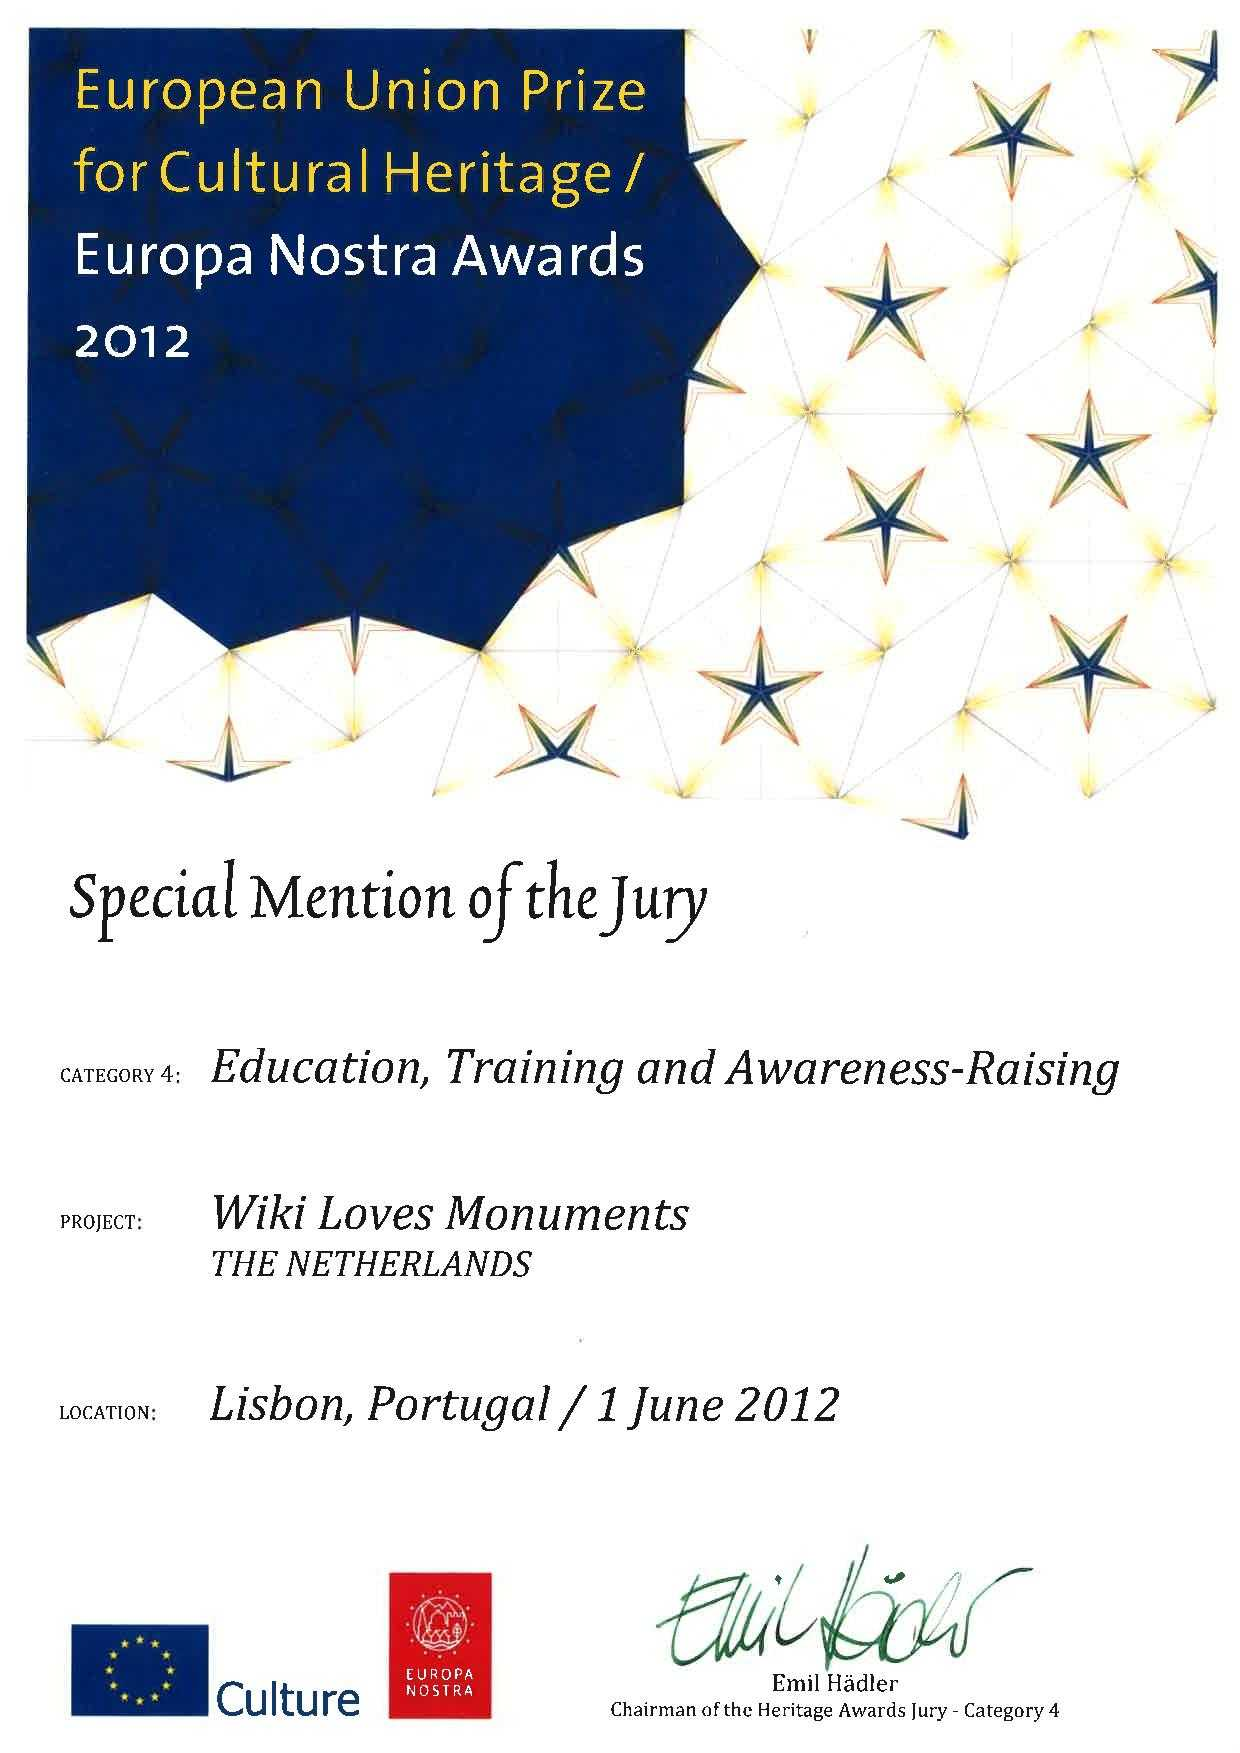 European Union Prize for Cultural Heritage – Special mention of the Jury